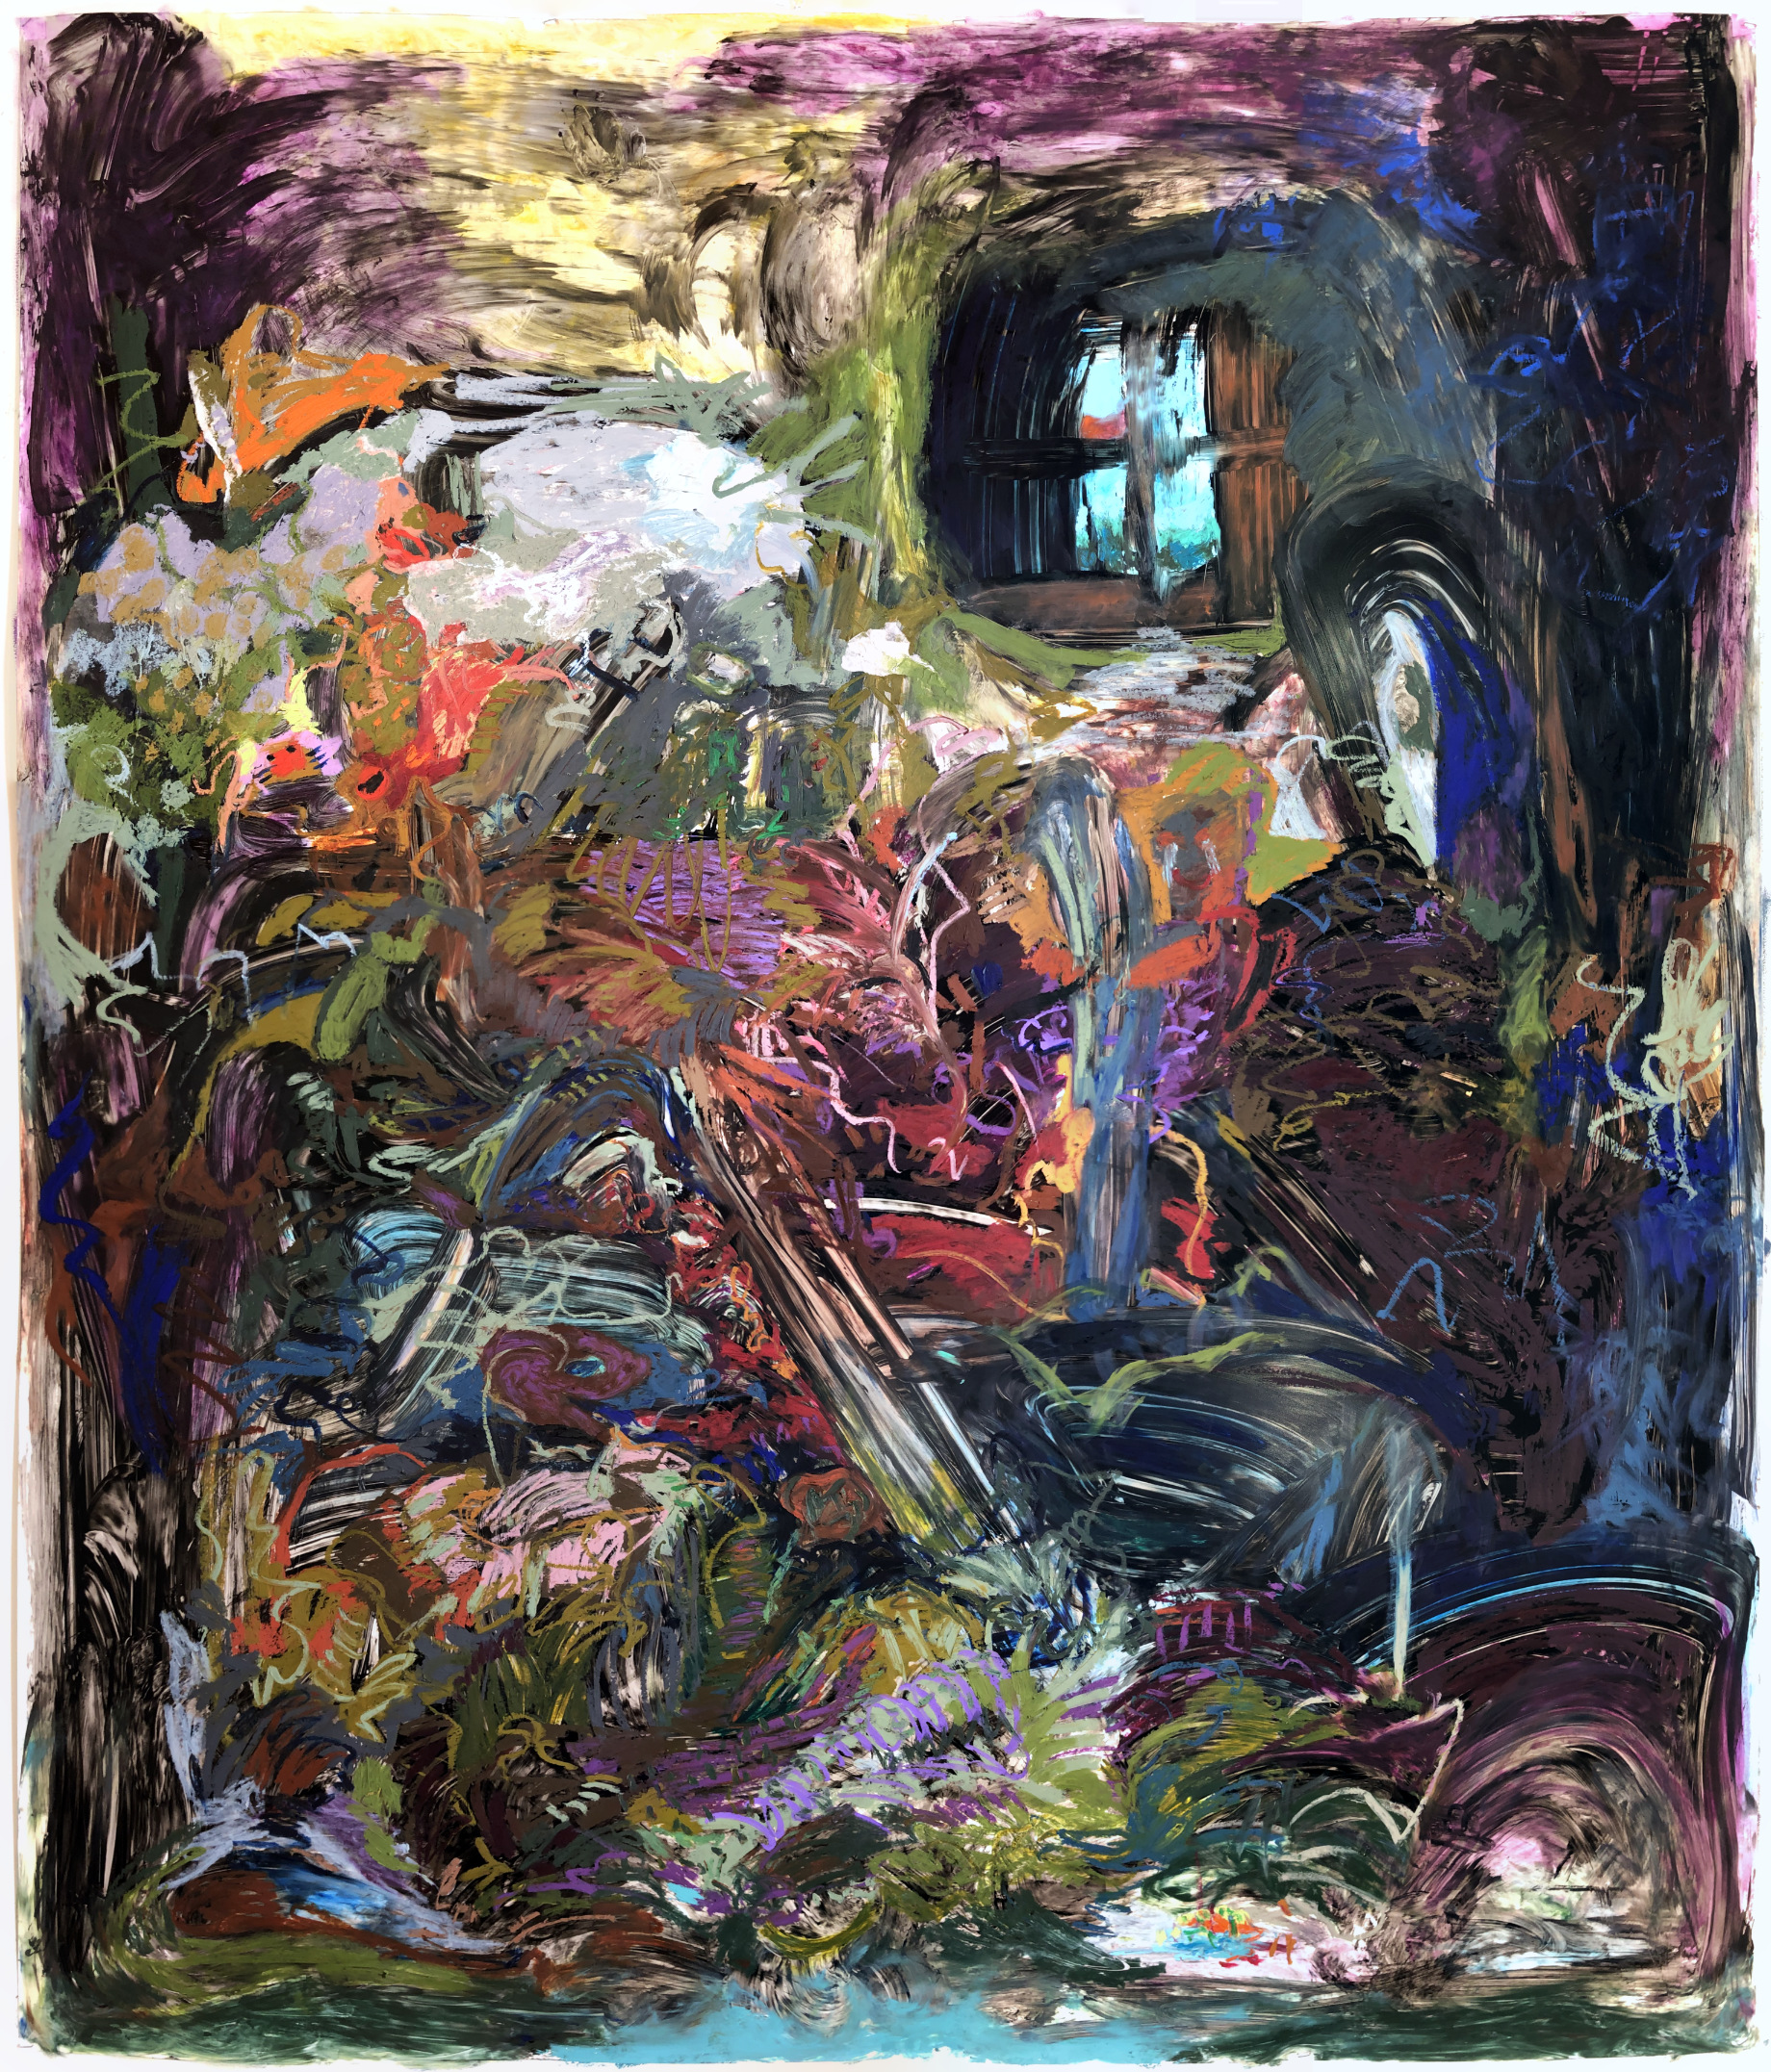 """Wrestling with (my God!) my God; Oil Pastel and Acrylic on Yupo; 70""""x60""""'; 2019; Based on Pierre Bonnard's  Interieur"""